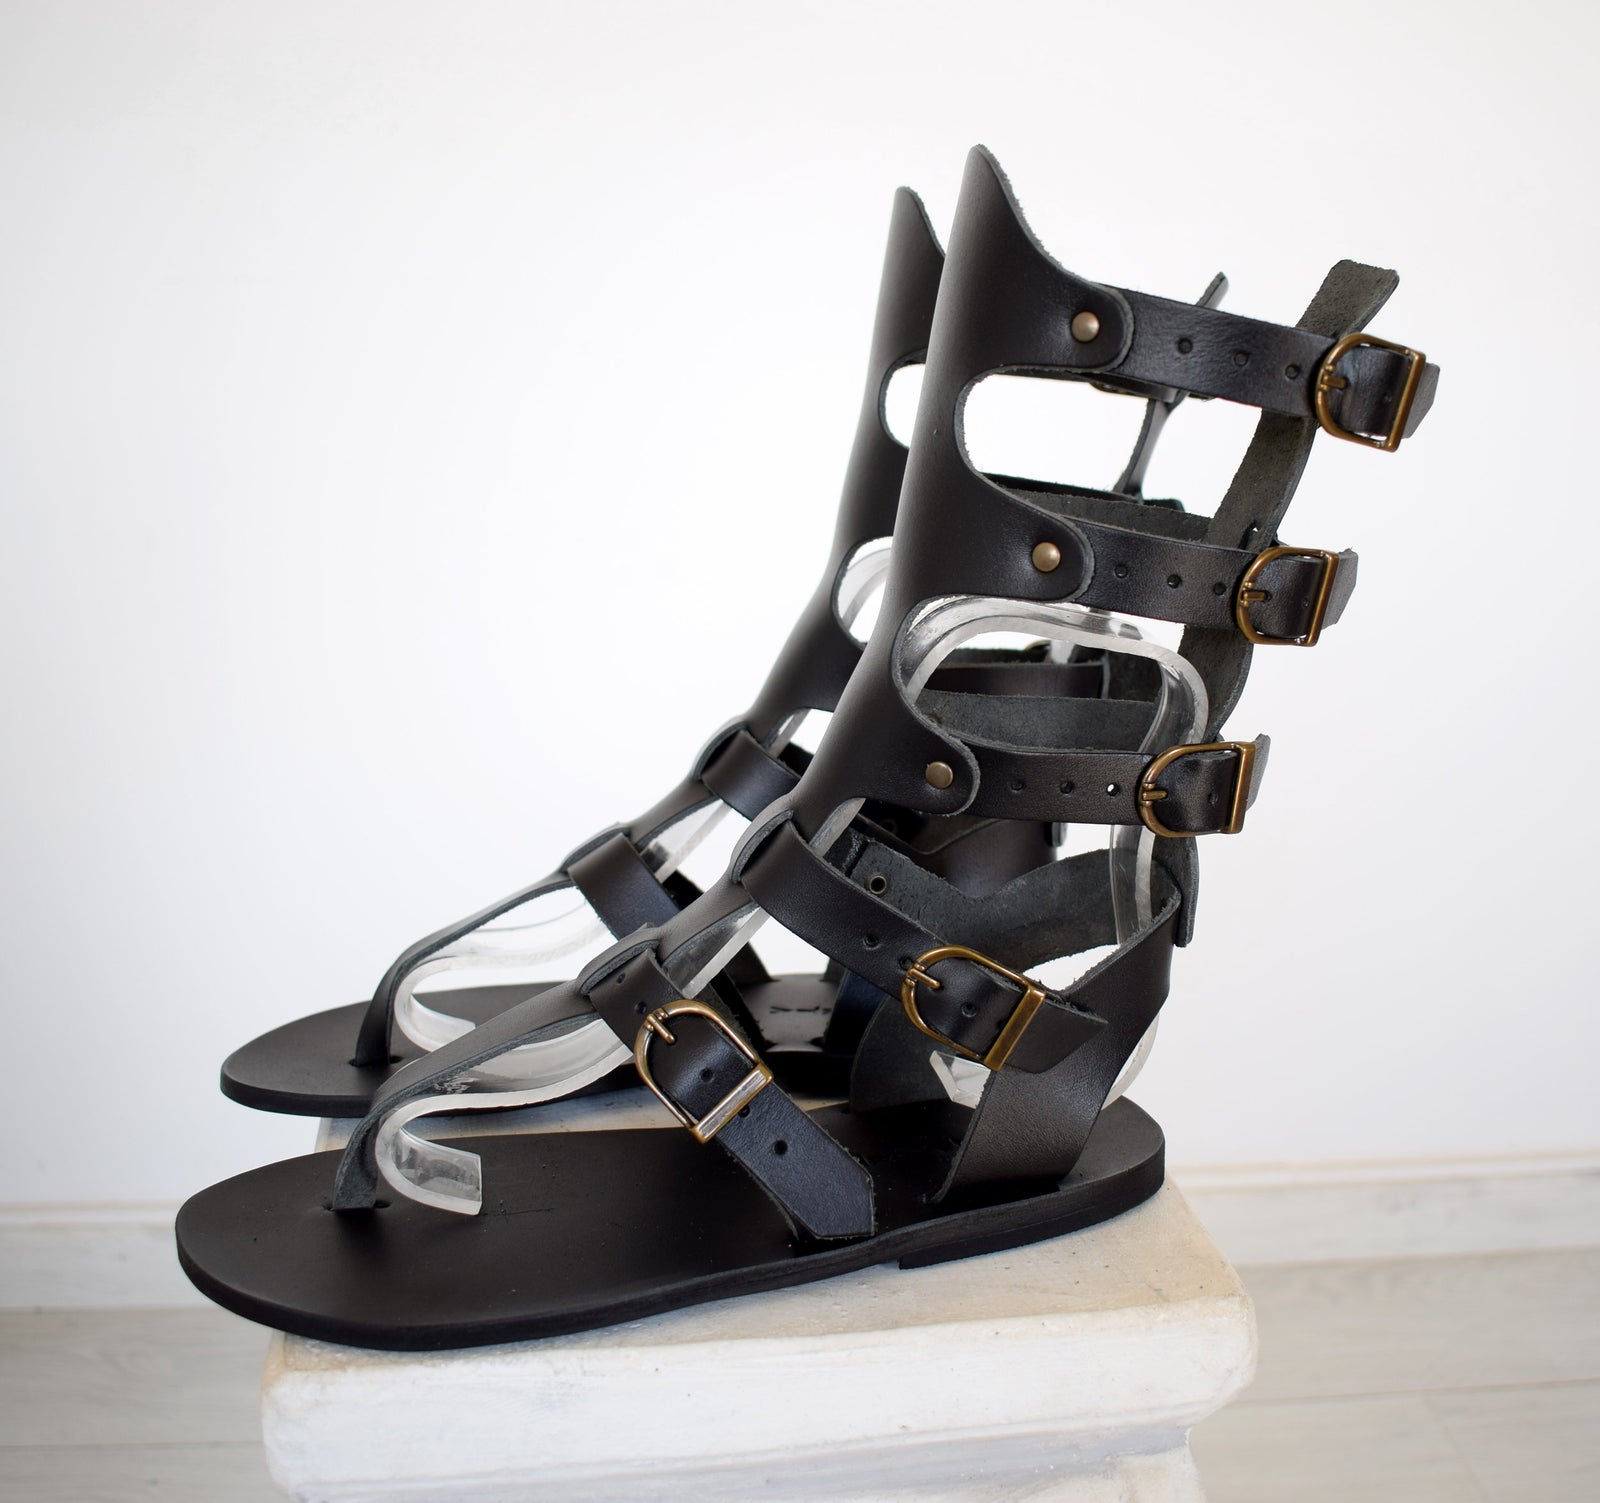 Gladiator Men Sandals, Handmade Leather Black Sandals, Genuine Leather sandals, Movie and Theater gladiator sandals, Sandals for Party